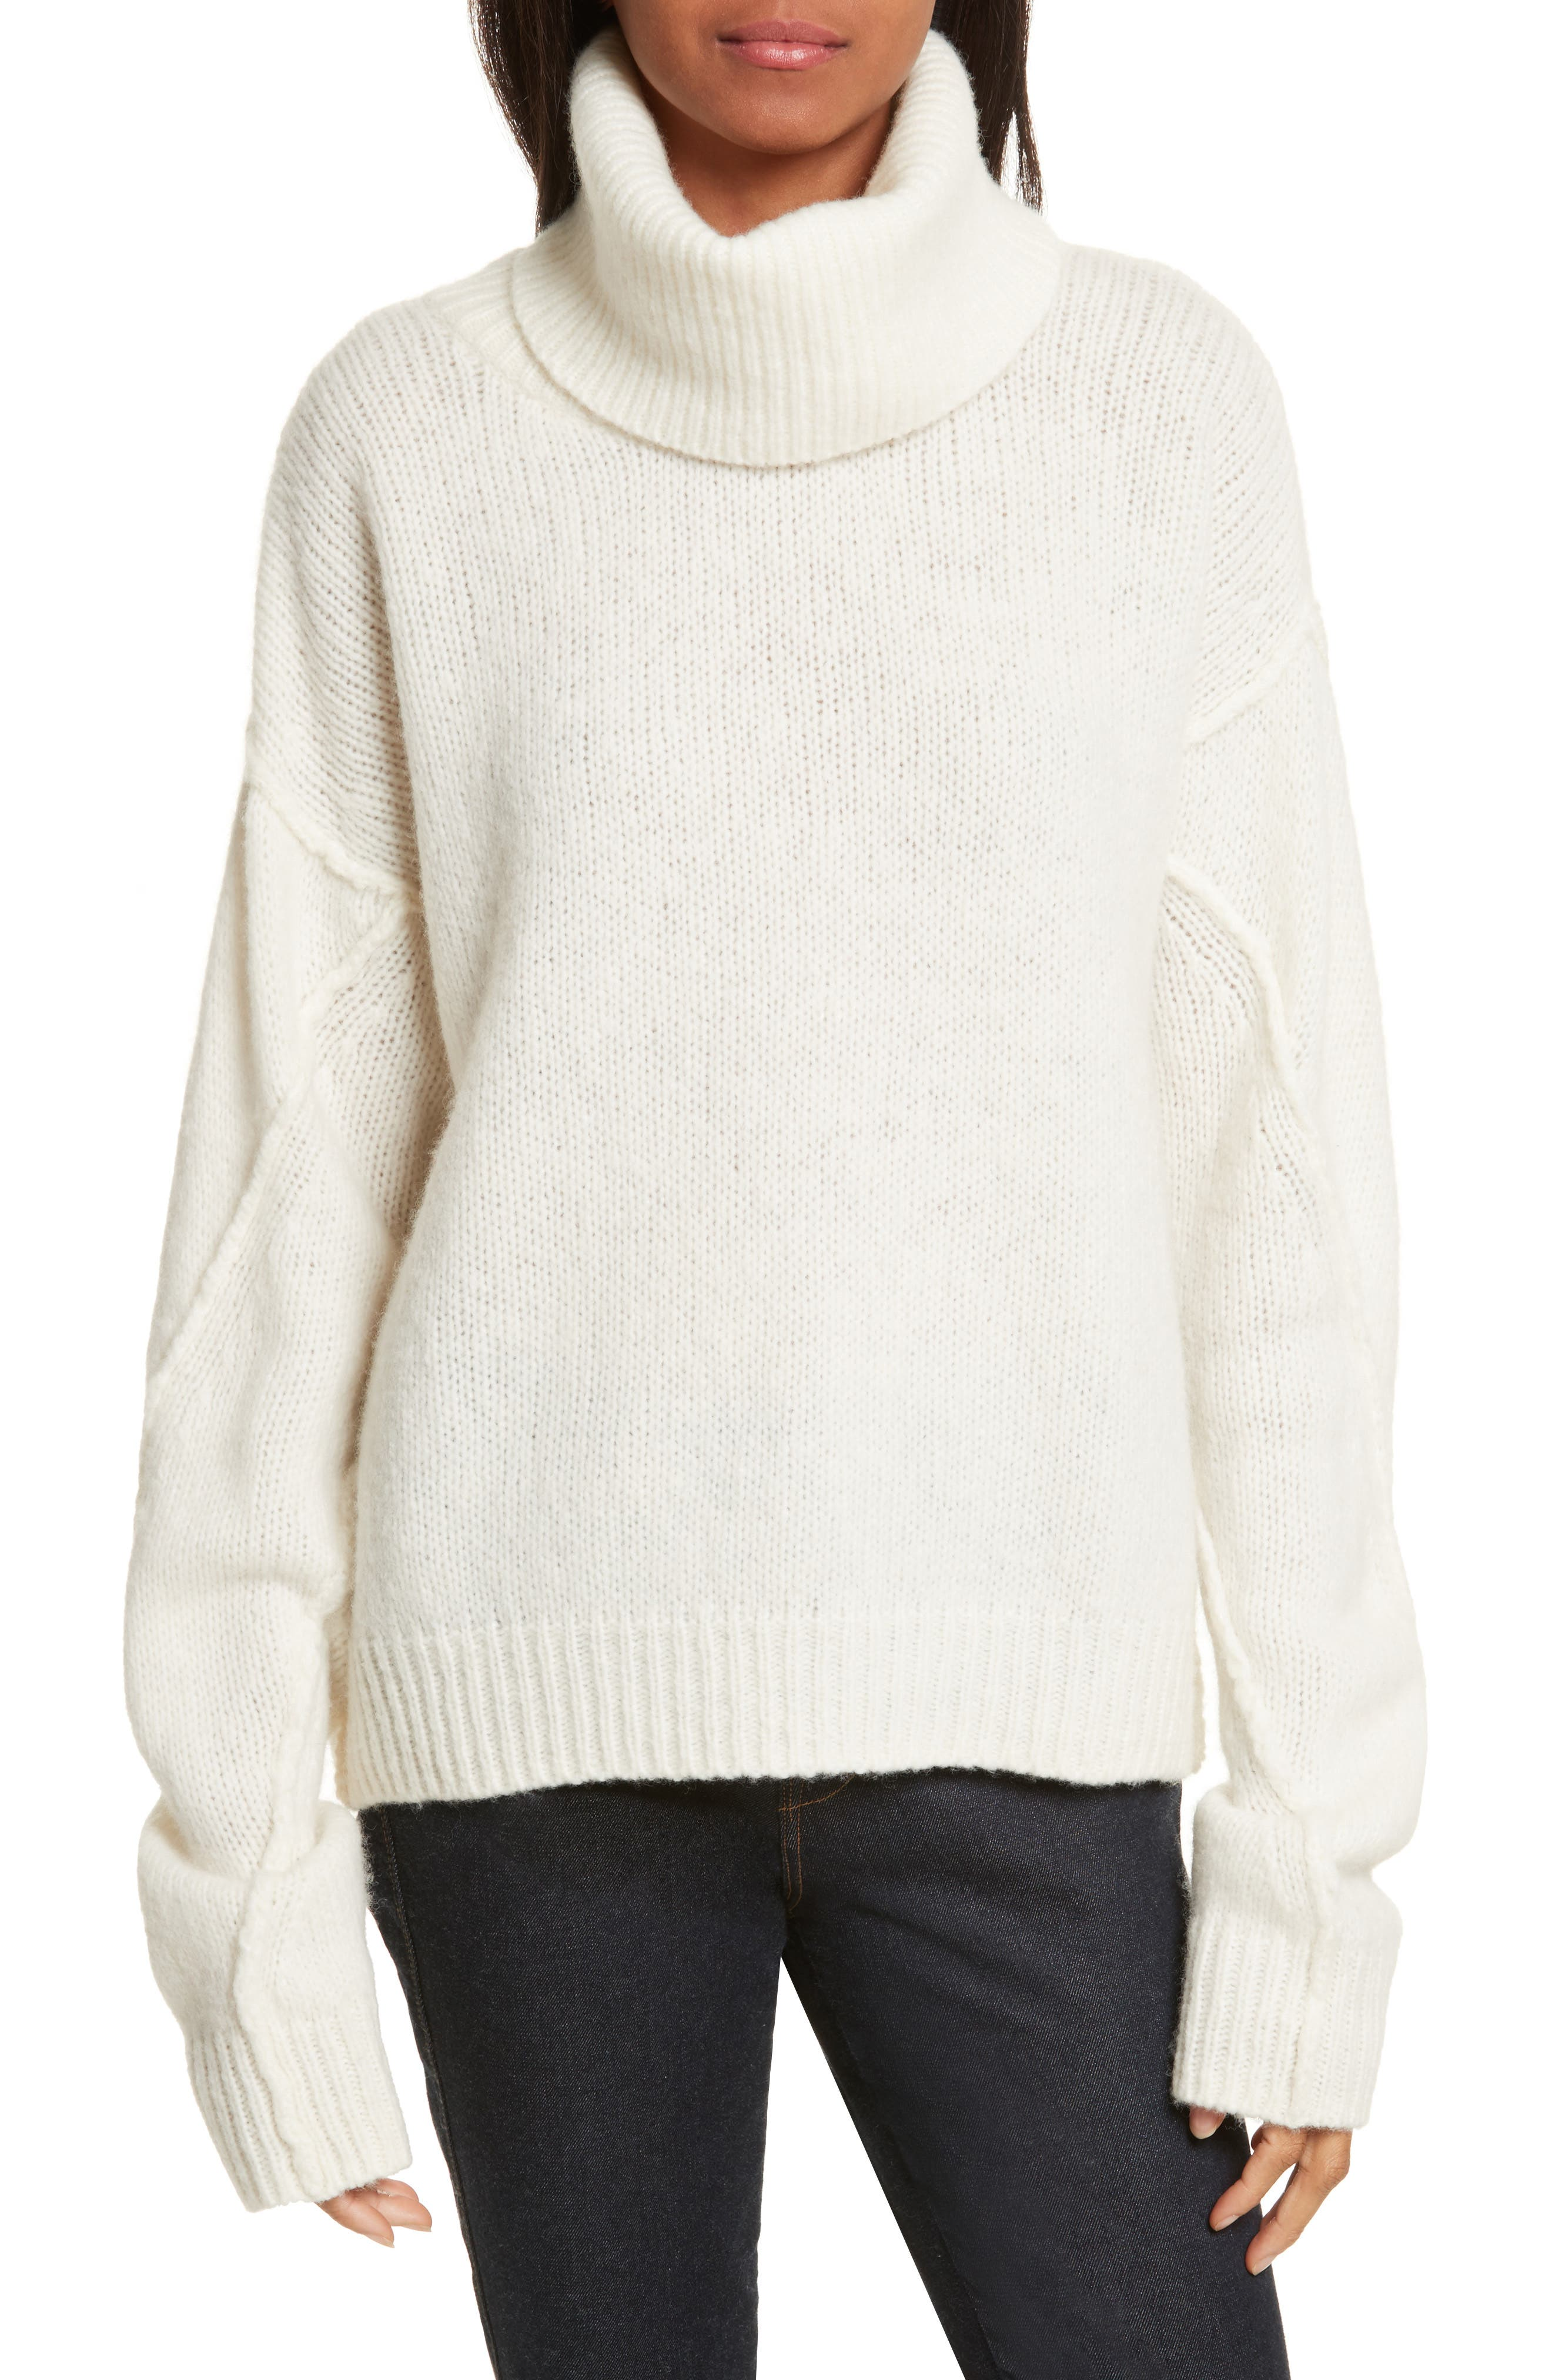 Tory Burch Eva Removable Turtleneck Sweater